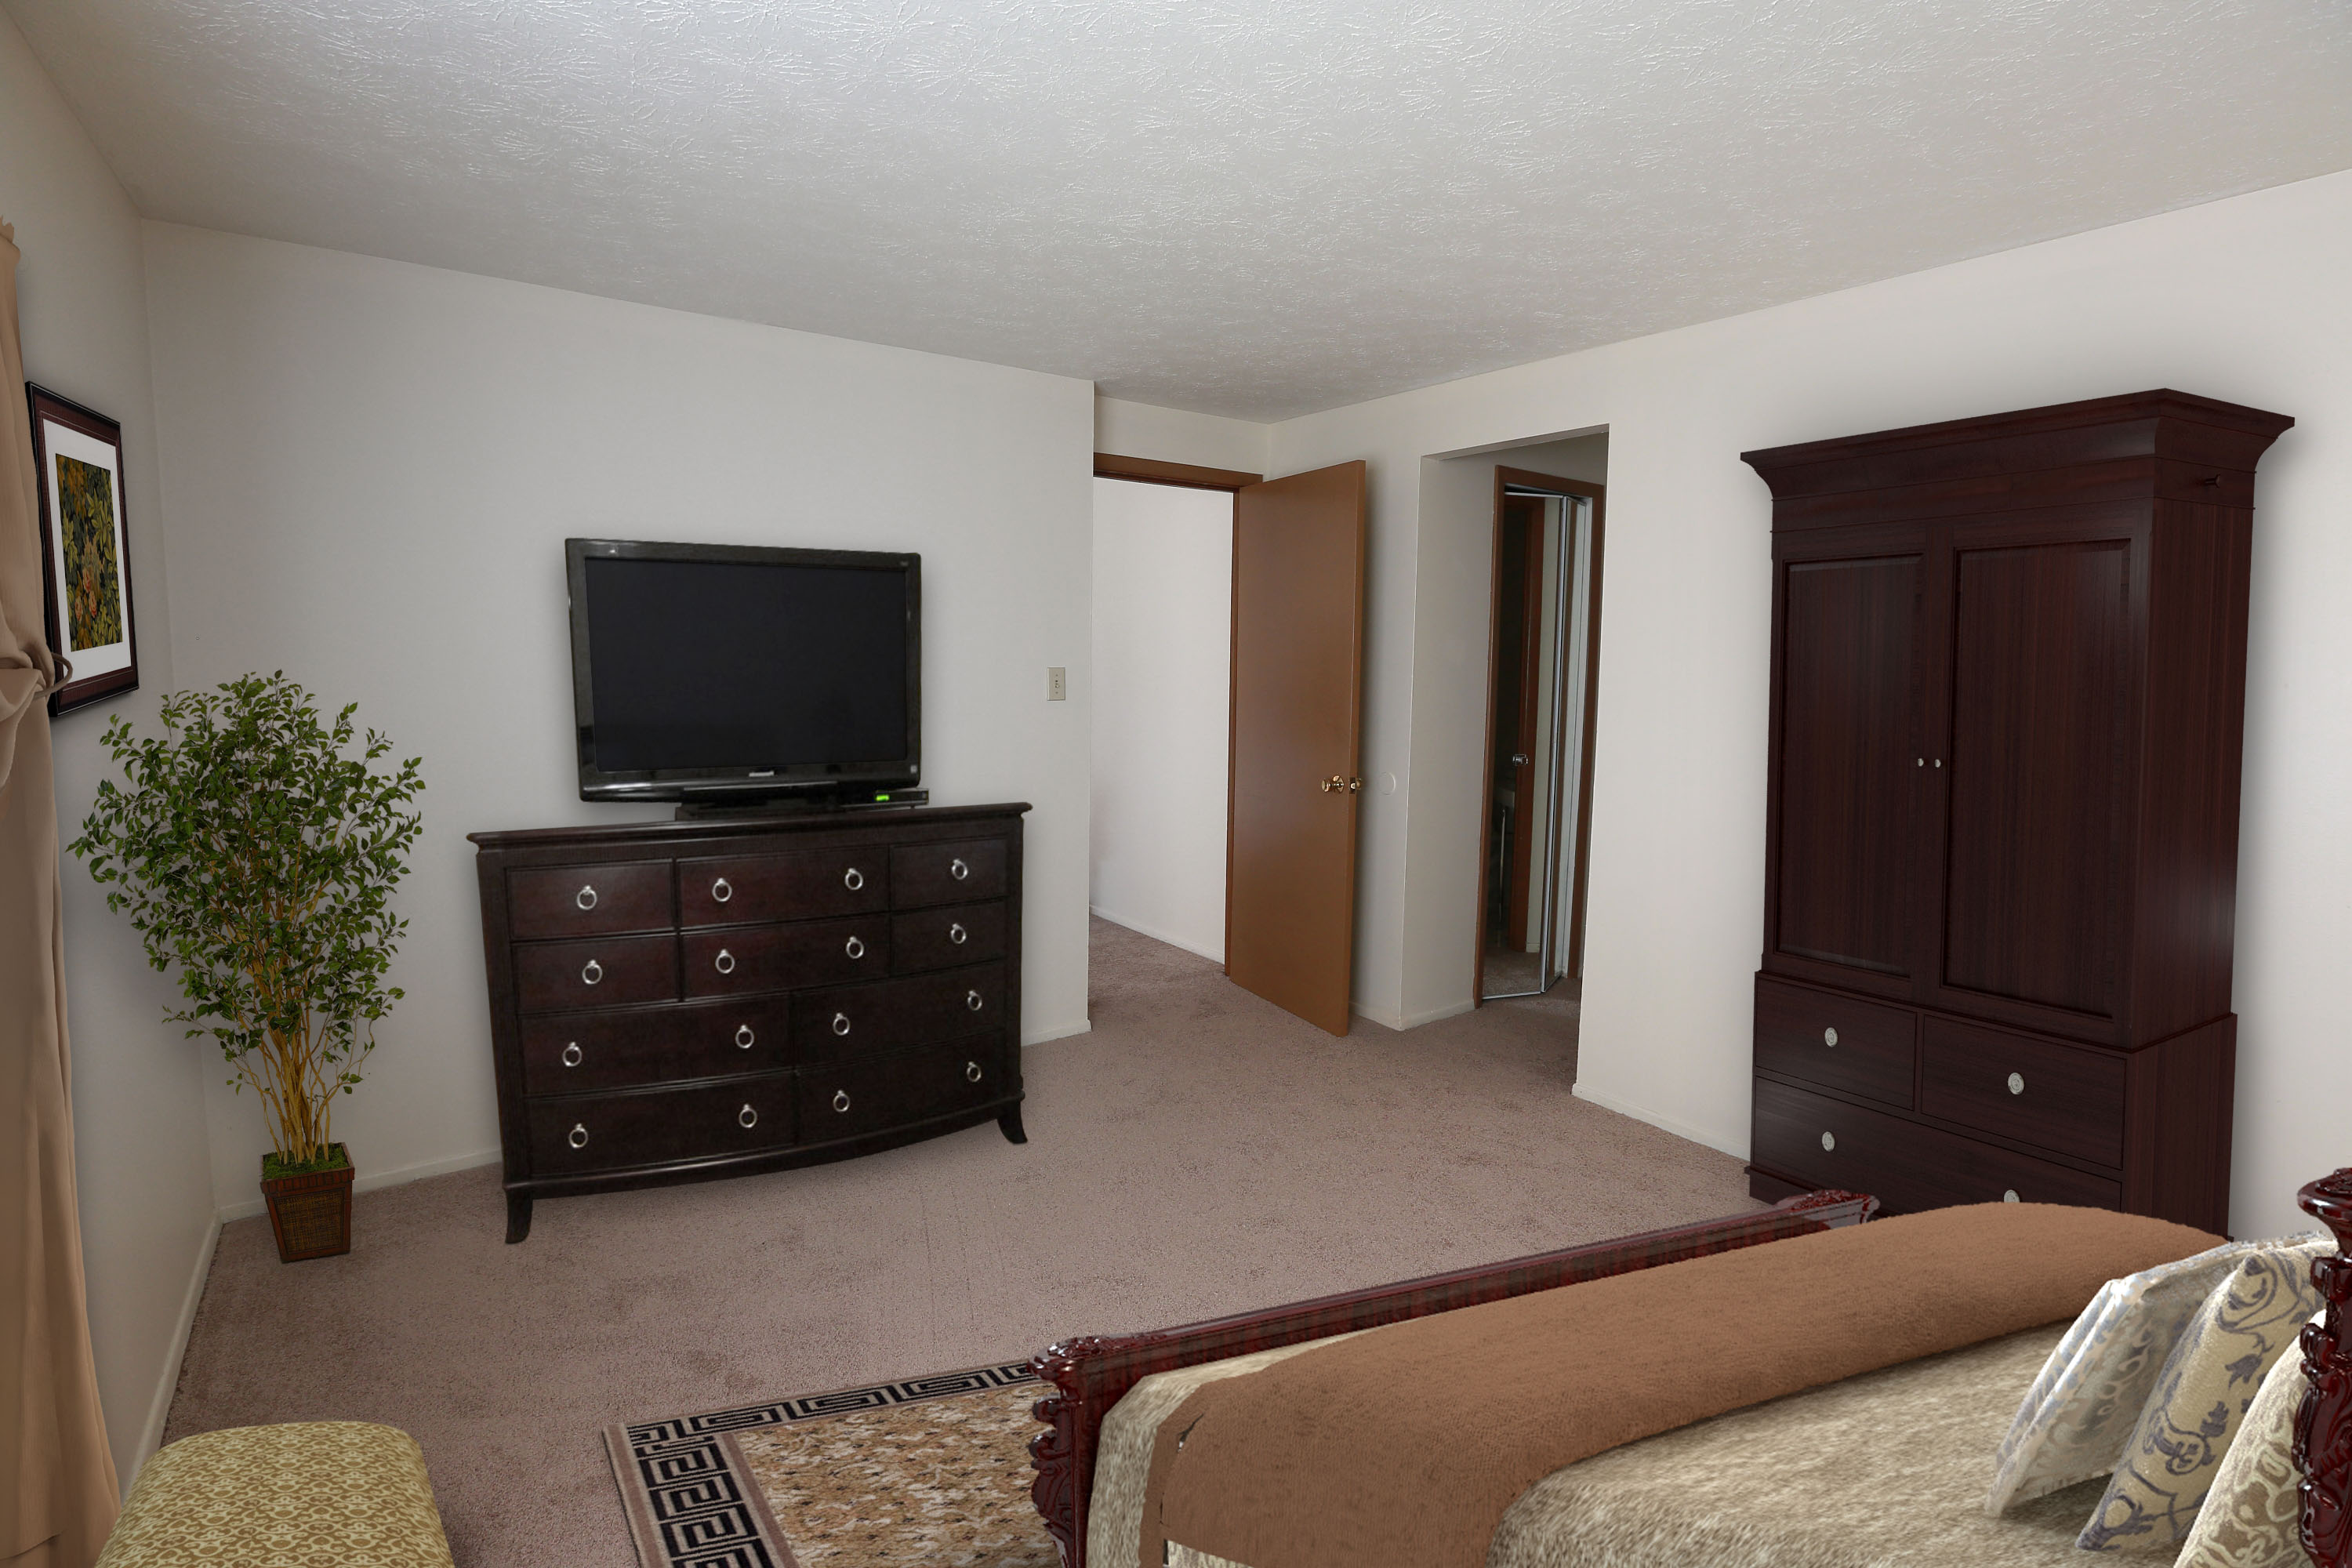 2B Bedroom #1 Furnished at the Greenridge on Euclid Apartments in Euclid, OH